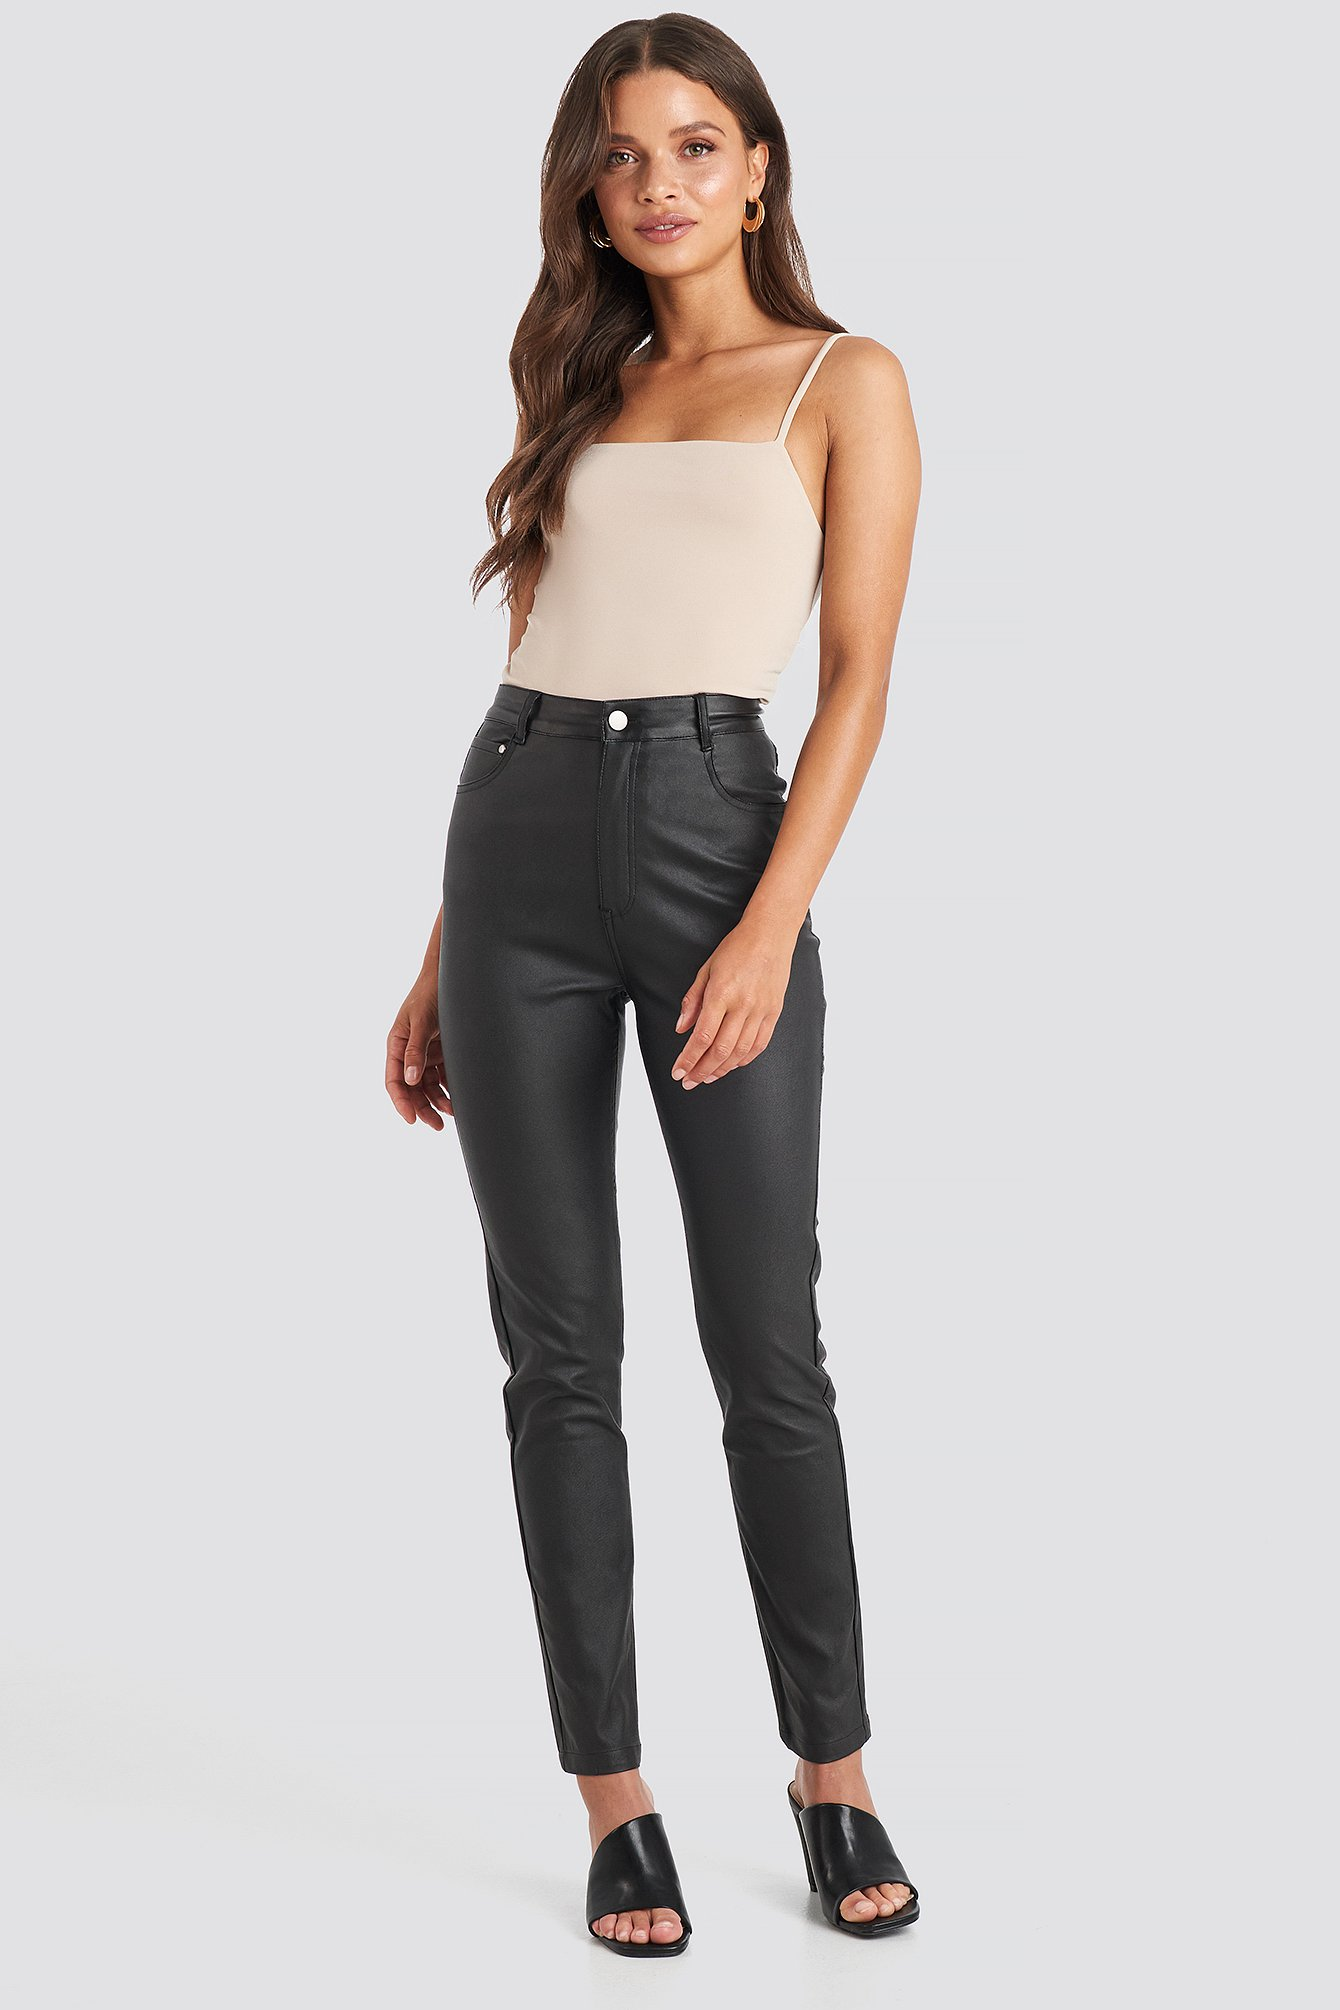 Coated Cotton Pants Black by Na Kd Trend